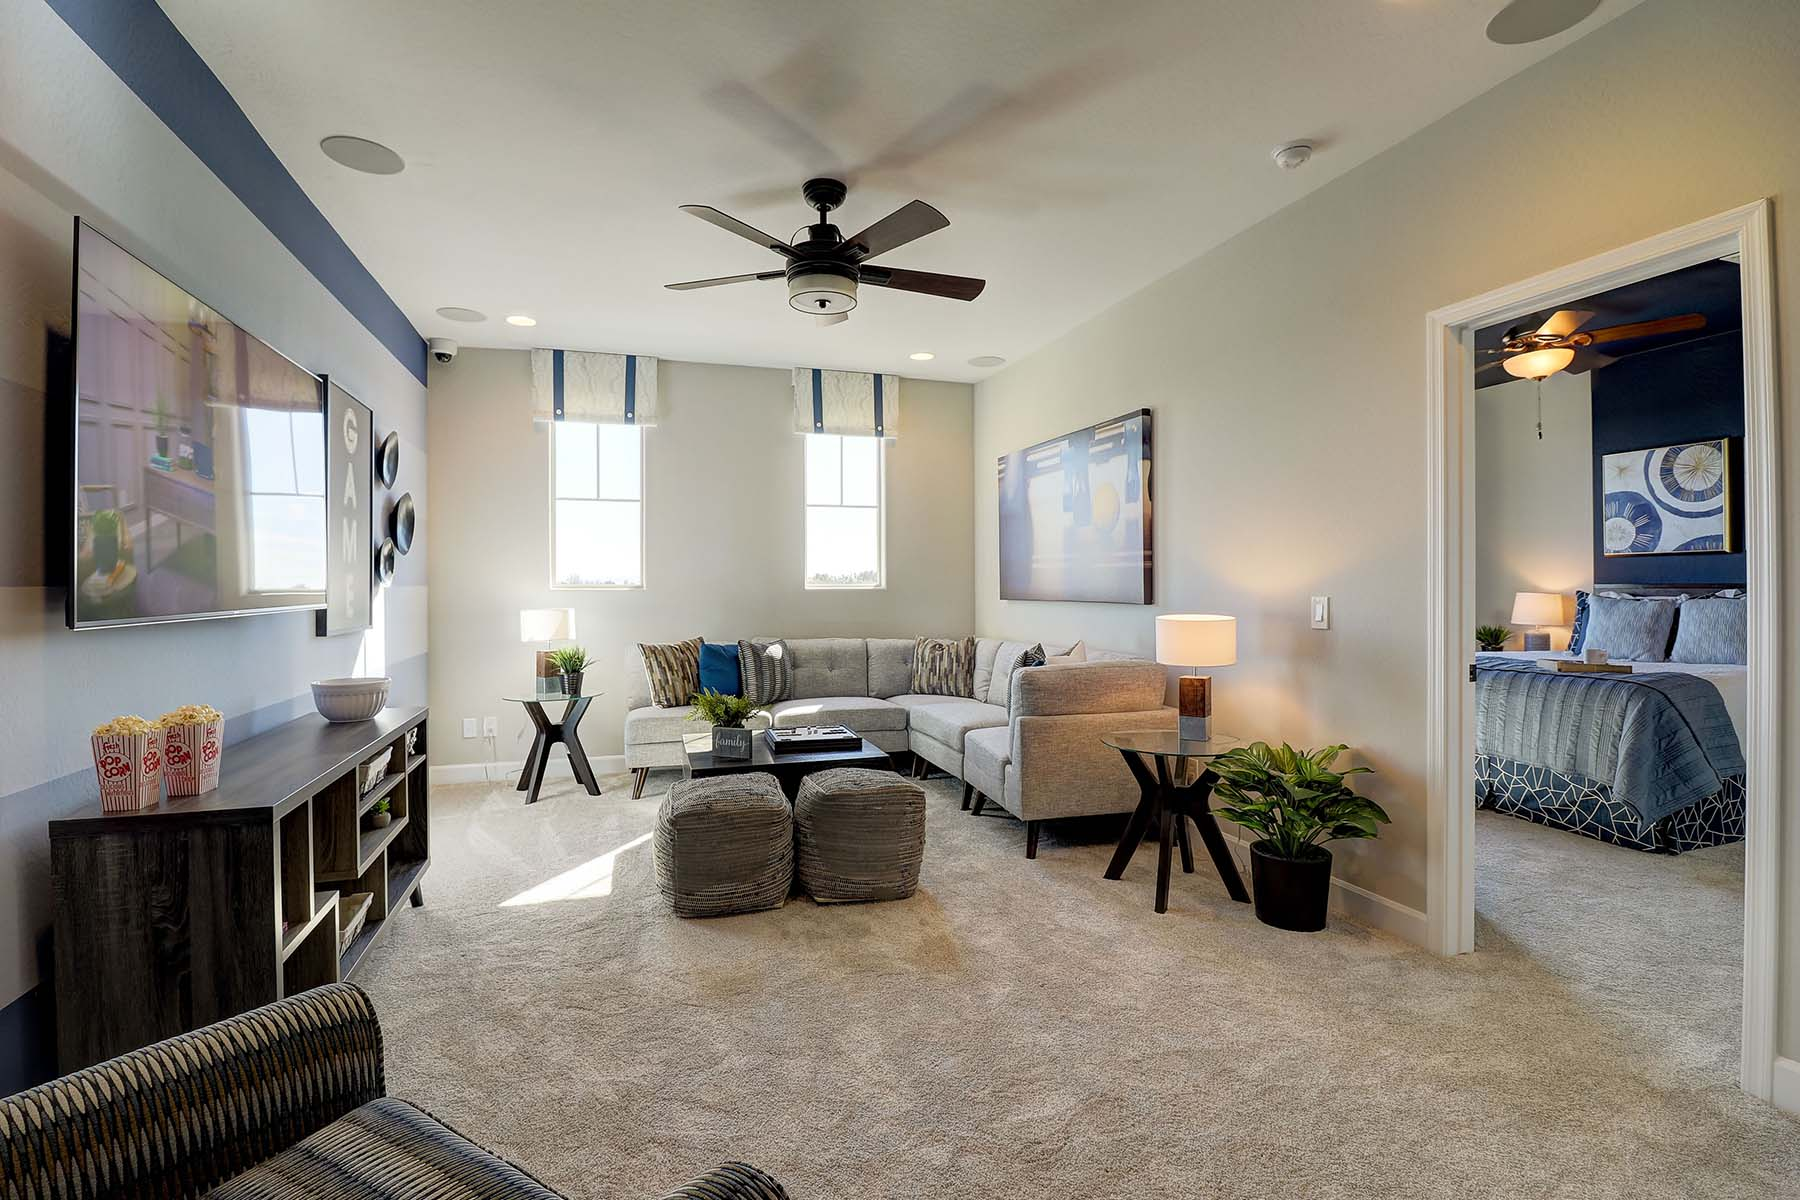 Leander Plan  at Vista Diamante at Camelback Ranch in Phoenix Arizona by Mattamy Homes